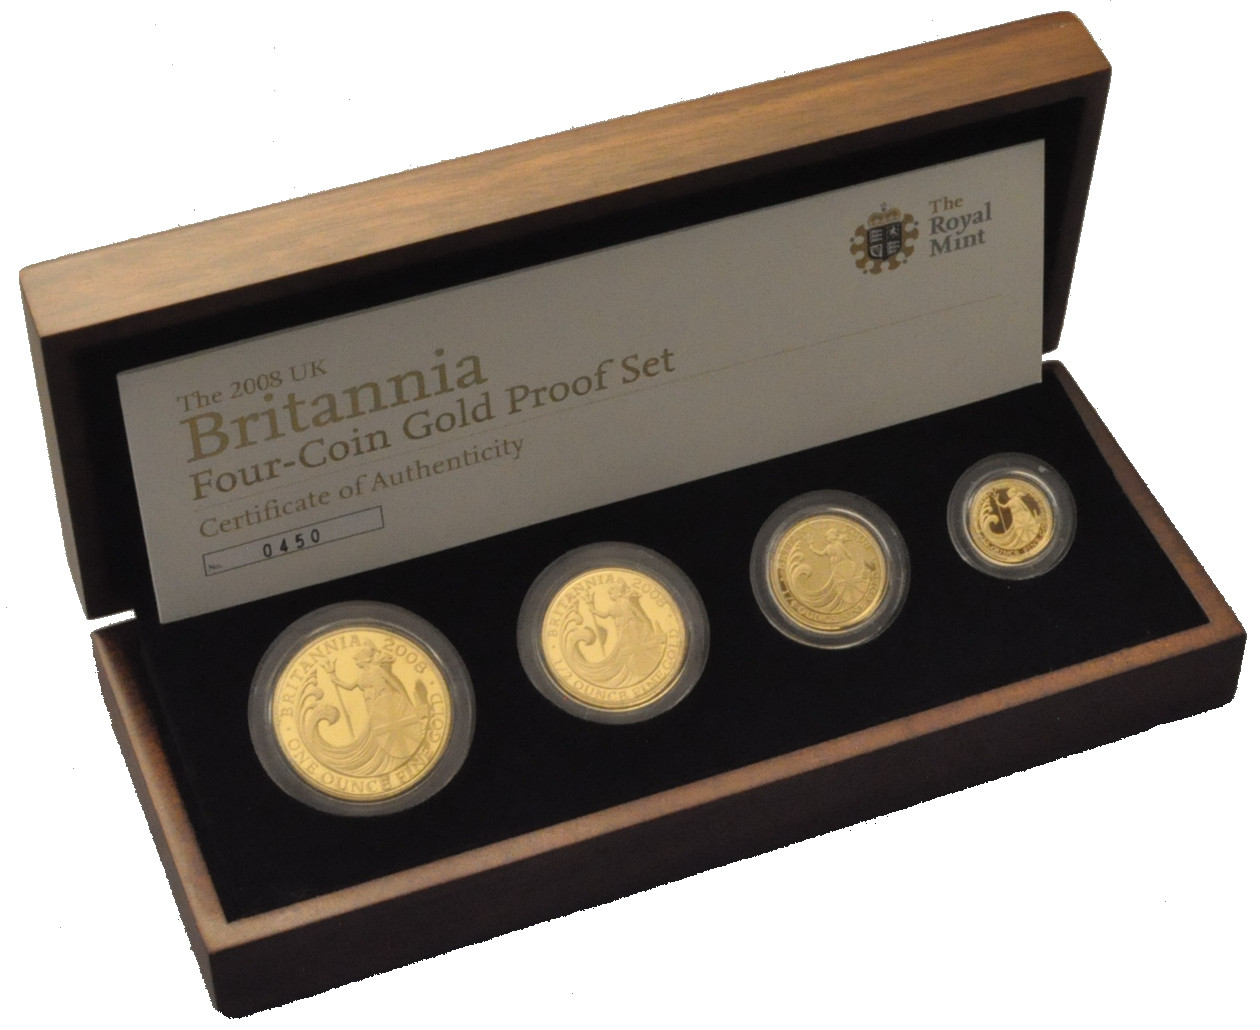 Awesome 2008 Proof Britannia Gold 4 Coin Boxed Set £2 520 Proof Sets Of Great 40 Photos Proof Sets